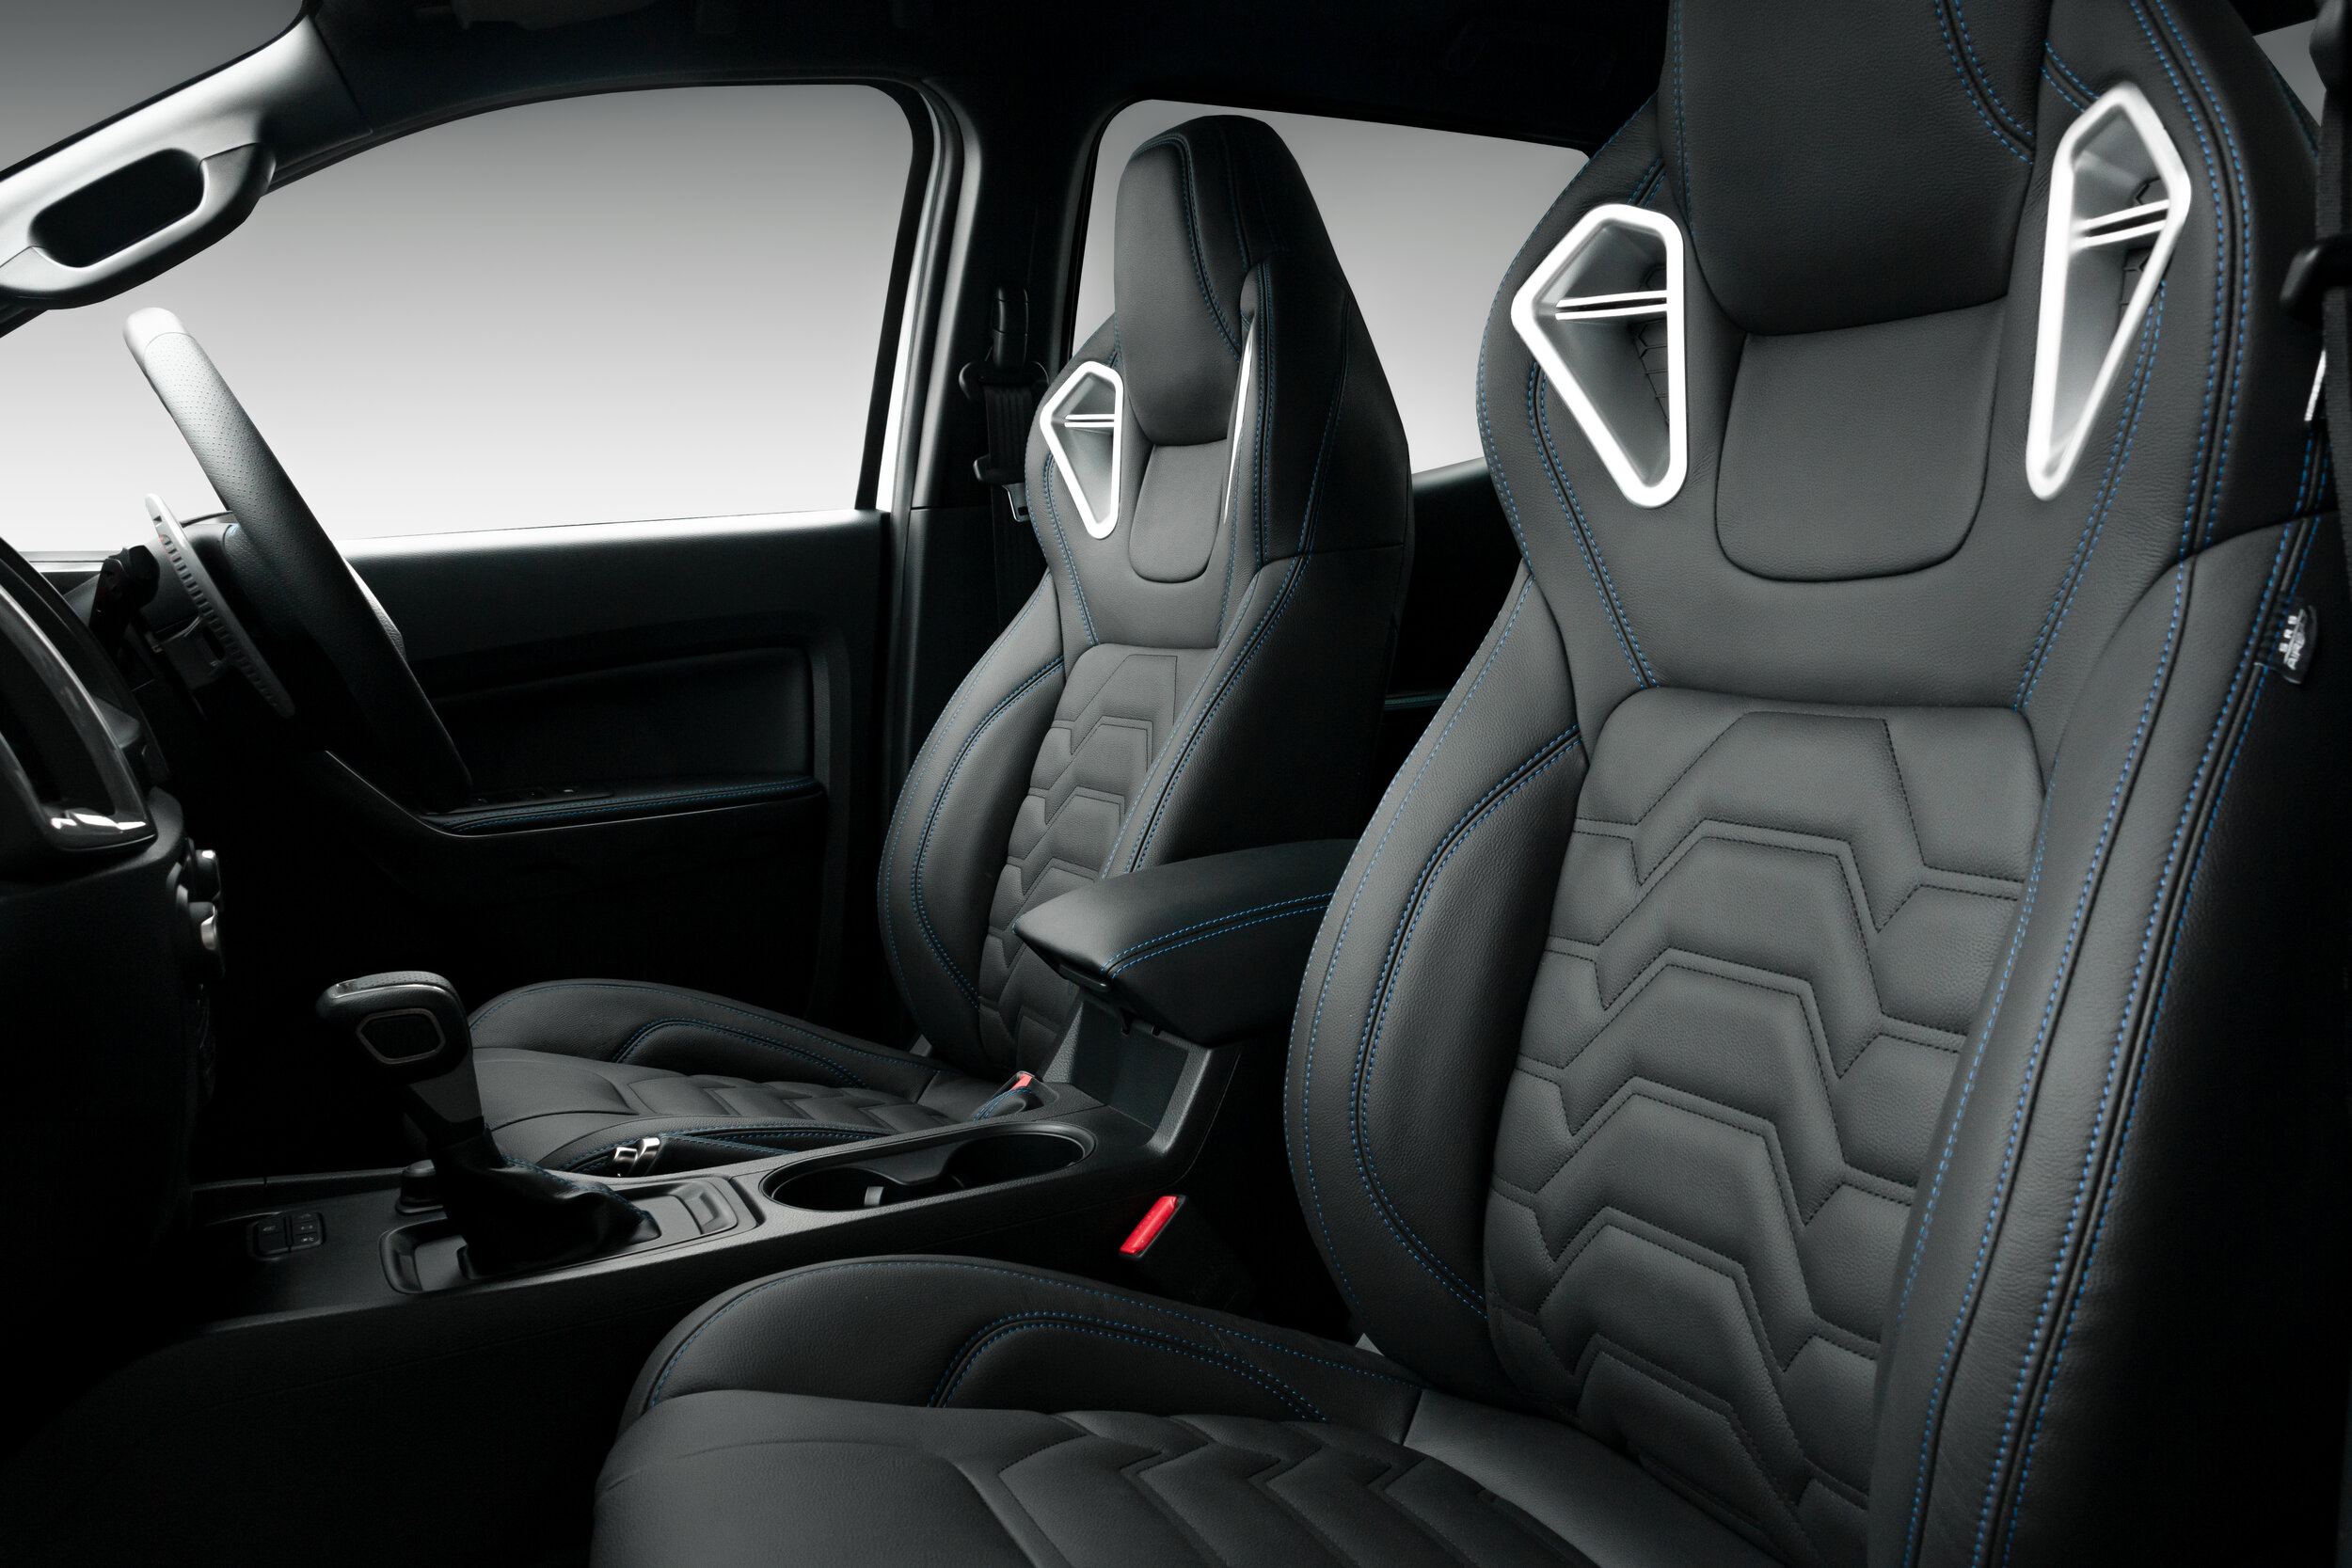 RVE-Sport-Leather-Upgrade-Monza-Design-Armour-No-Inserts-Ford-Ranger-Raptor-Front-Row-Upgrade-4.jpg